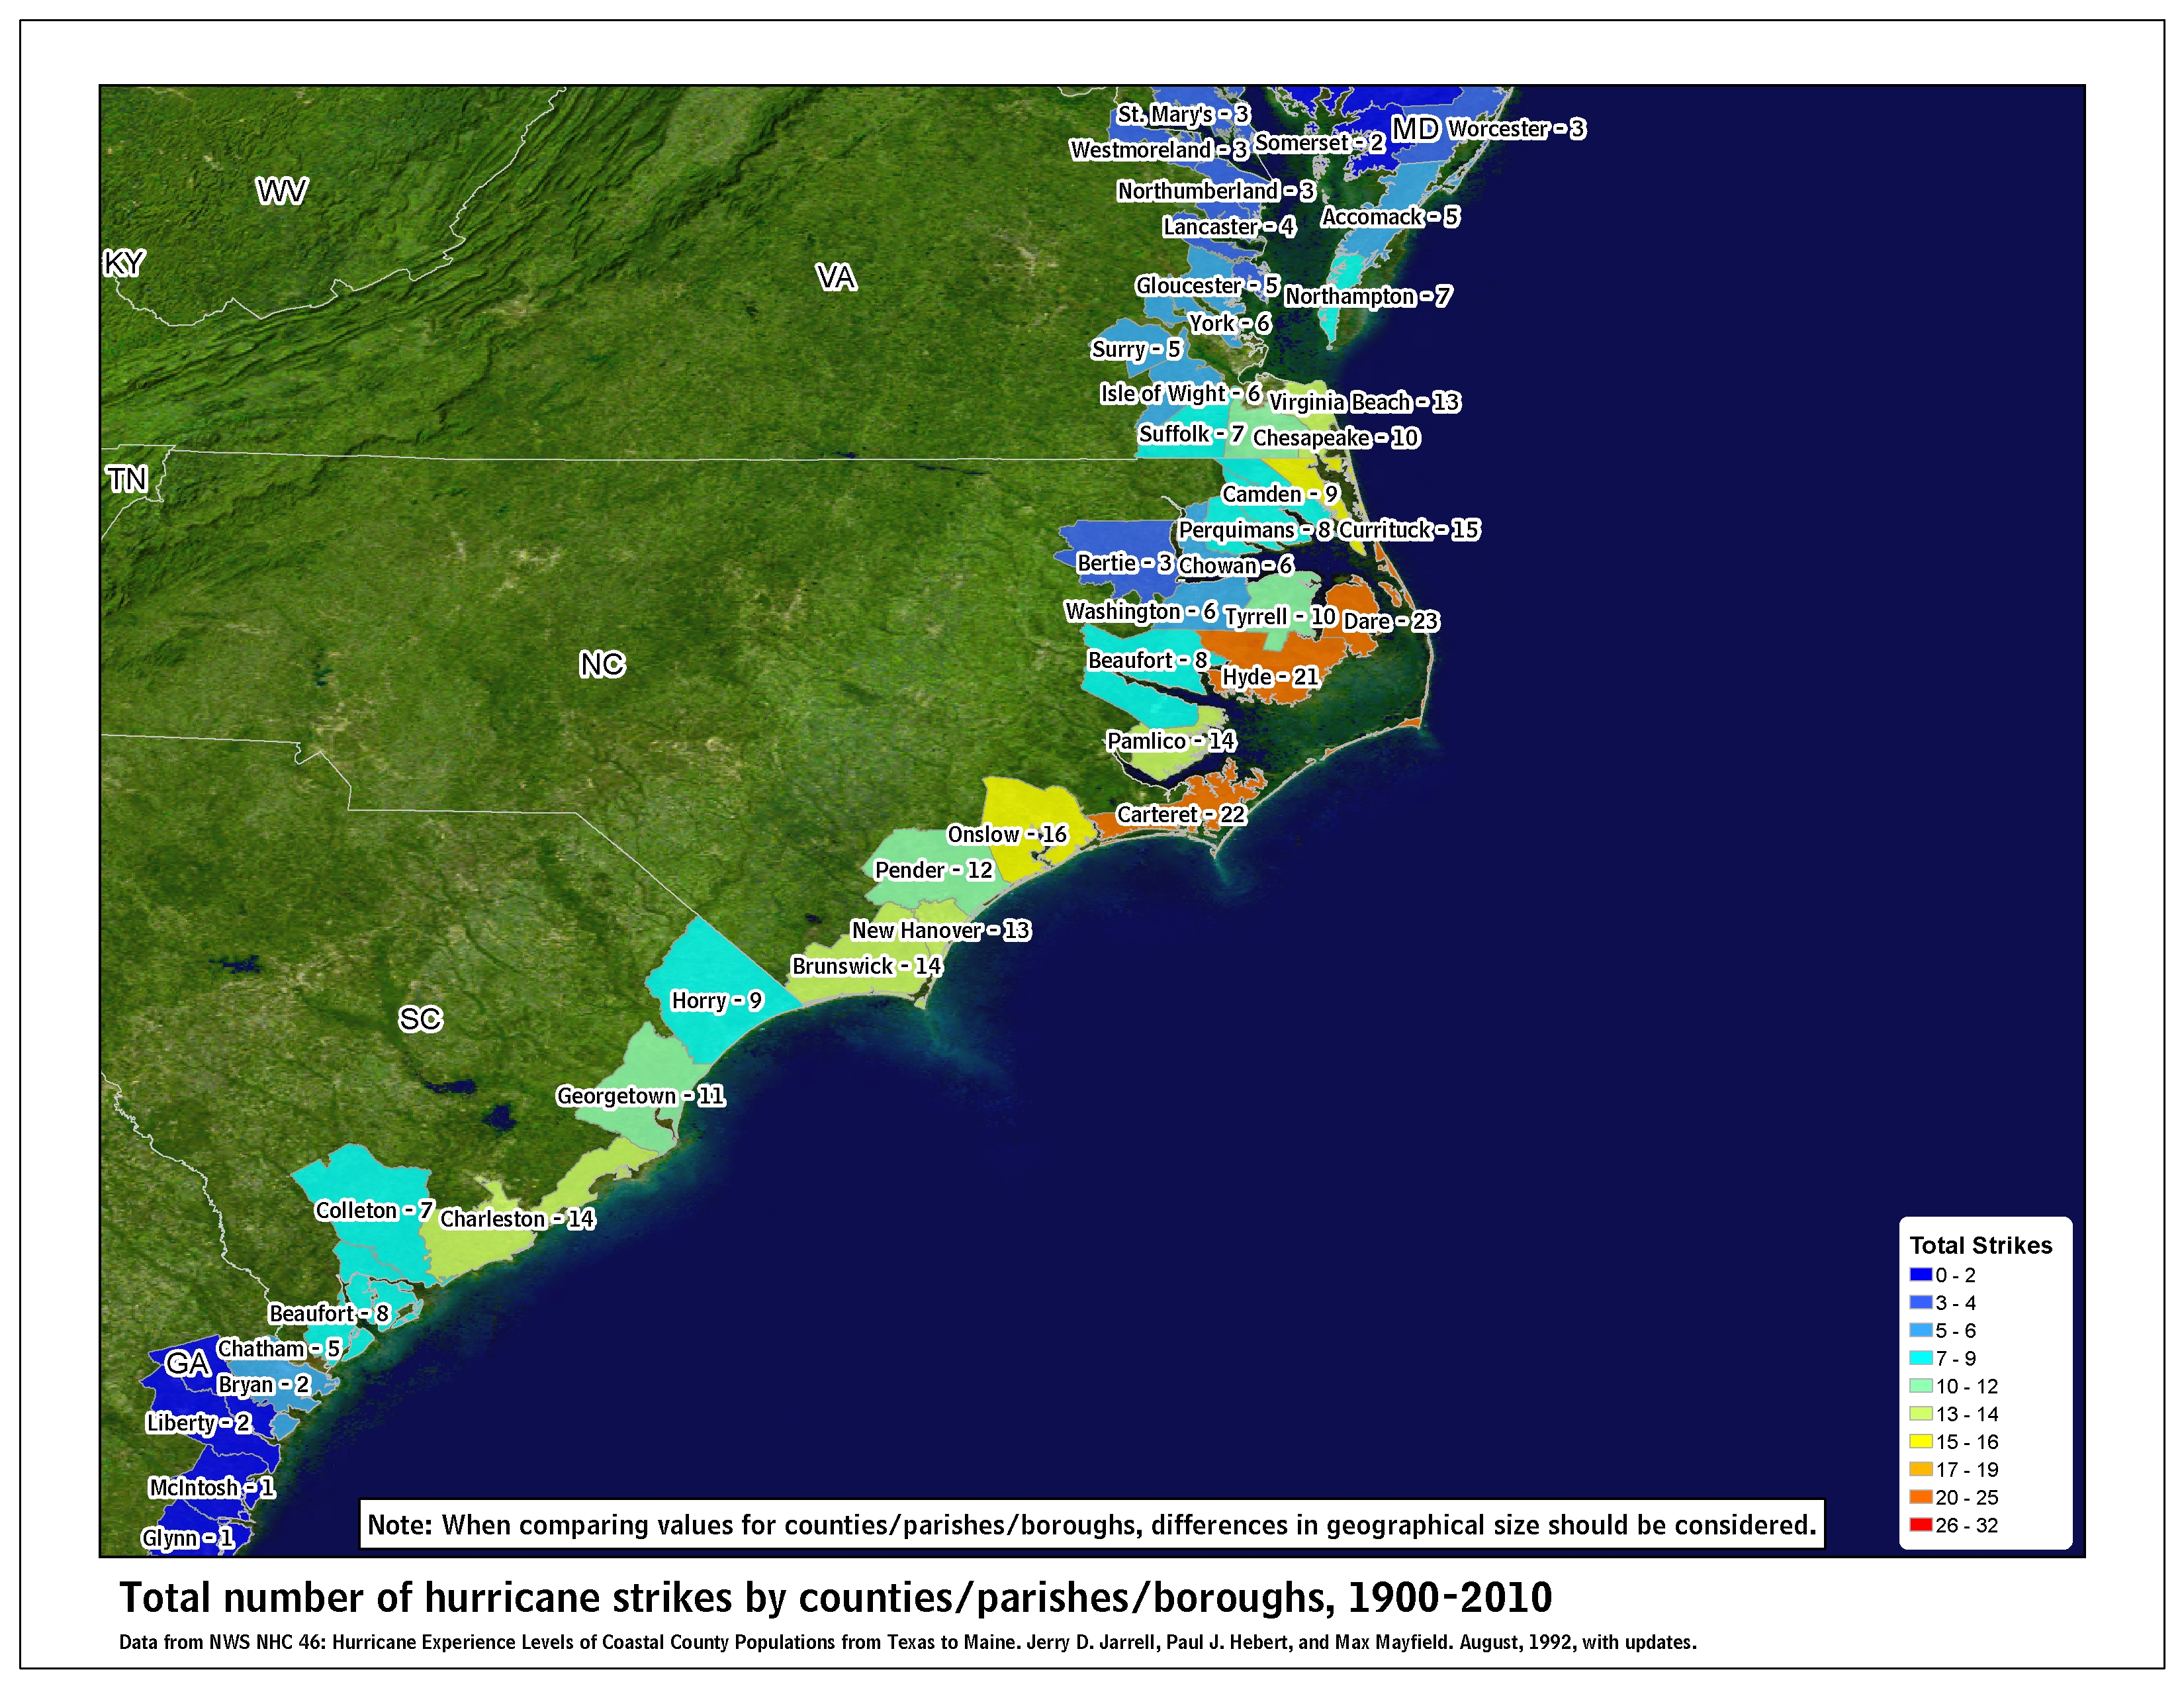 map of 1900 2010 hurricane strikes by us countiesparishes southeast